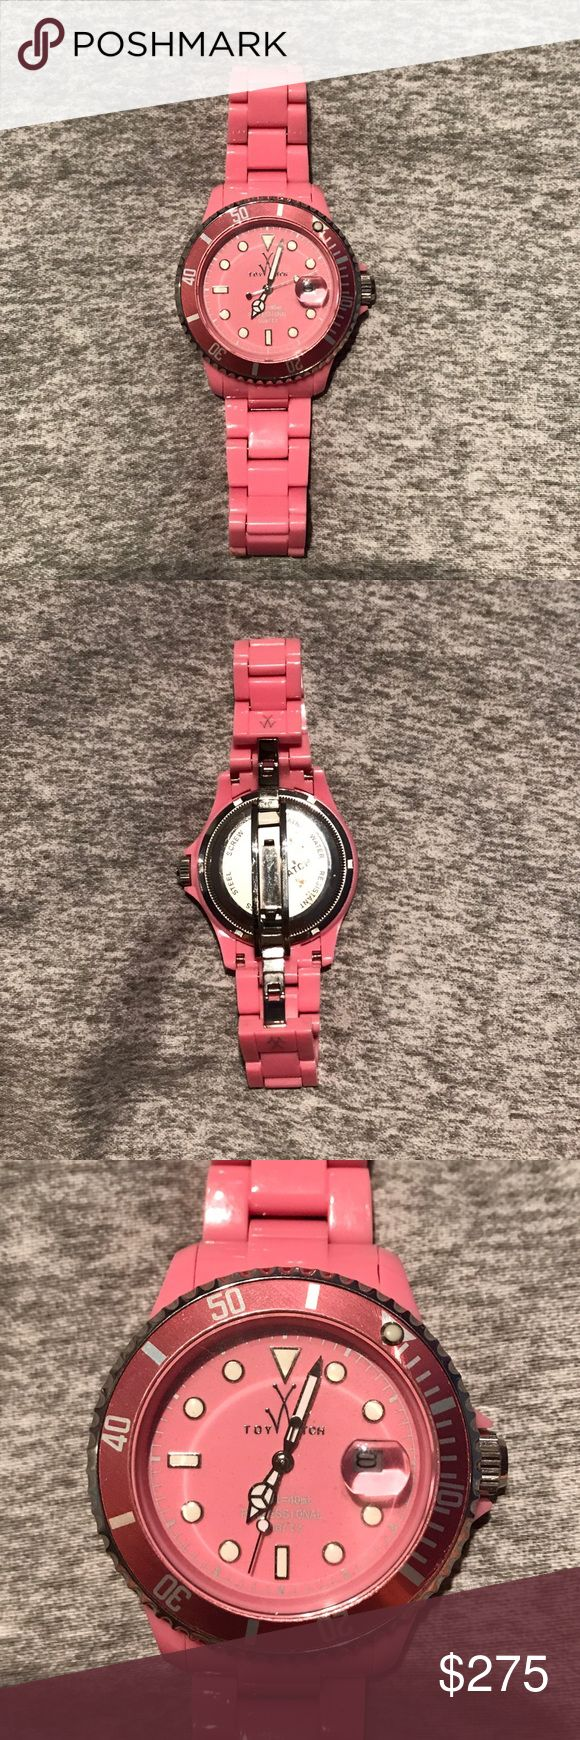 Toy Watch 'Fluo' Hot Pink Toy Watch 'Fluo' Hot Pink. Worn a few times. Great condition! Comes with extra links. ToyWatch Accessories Watches